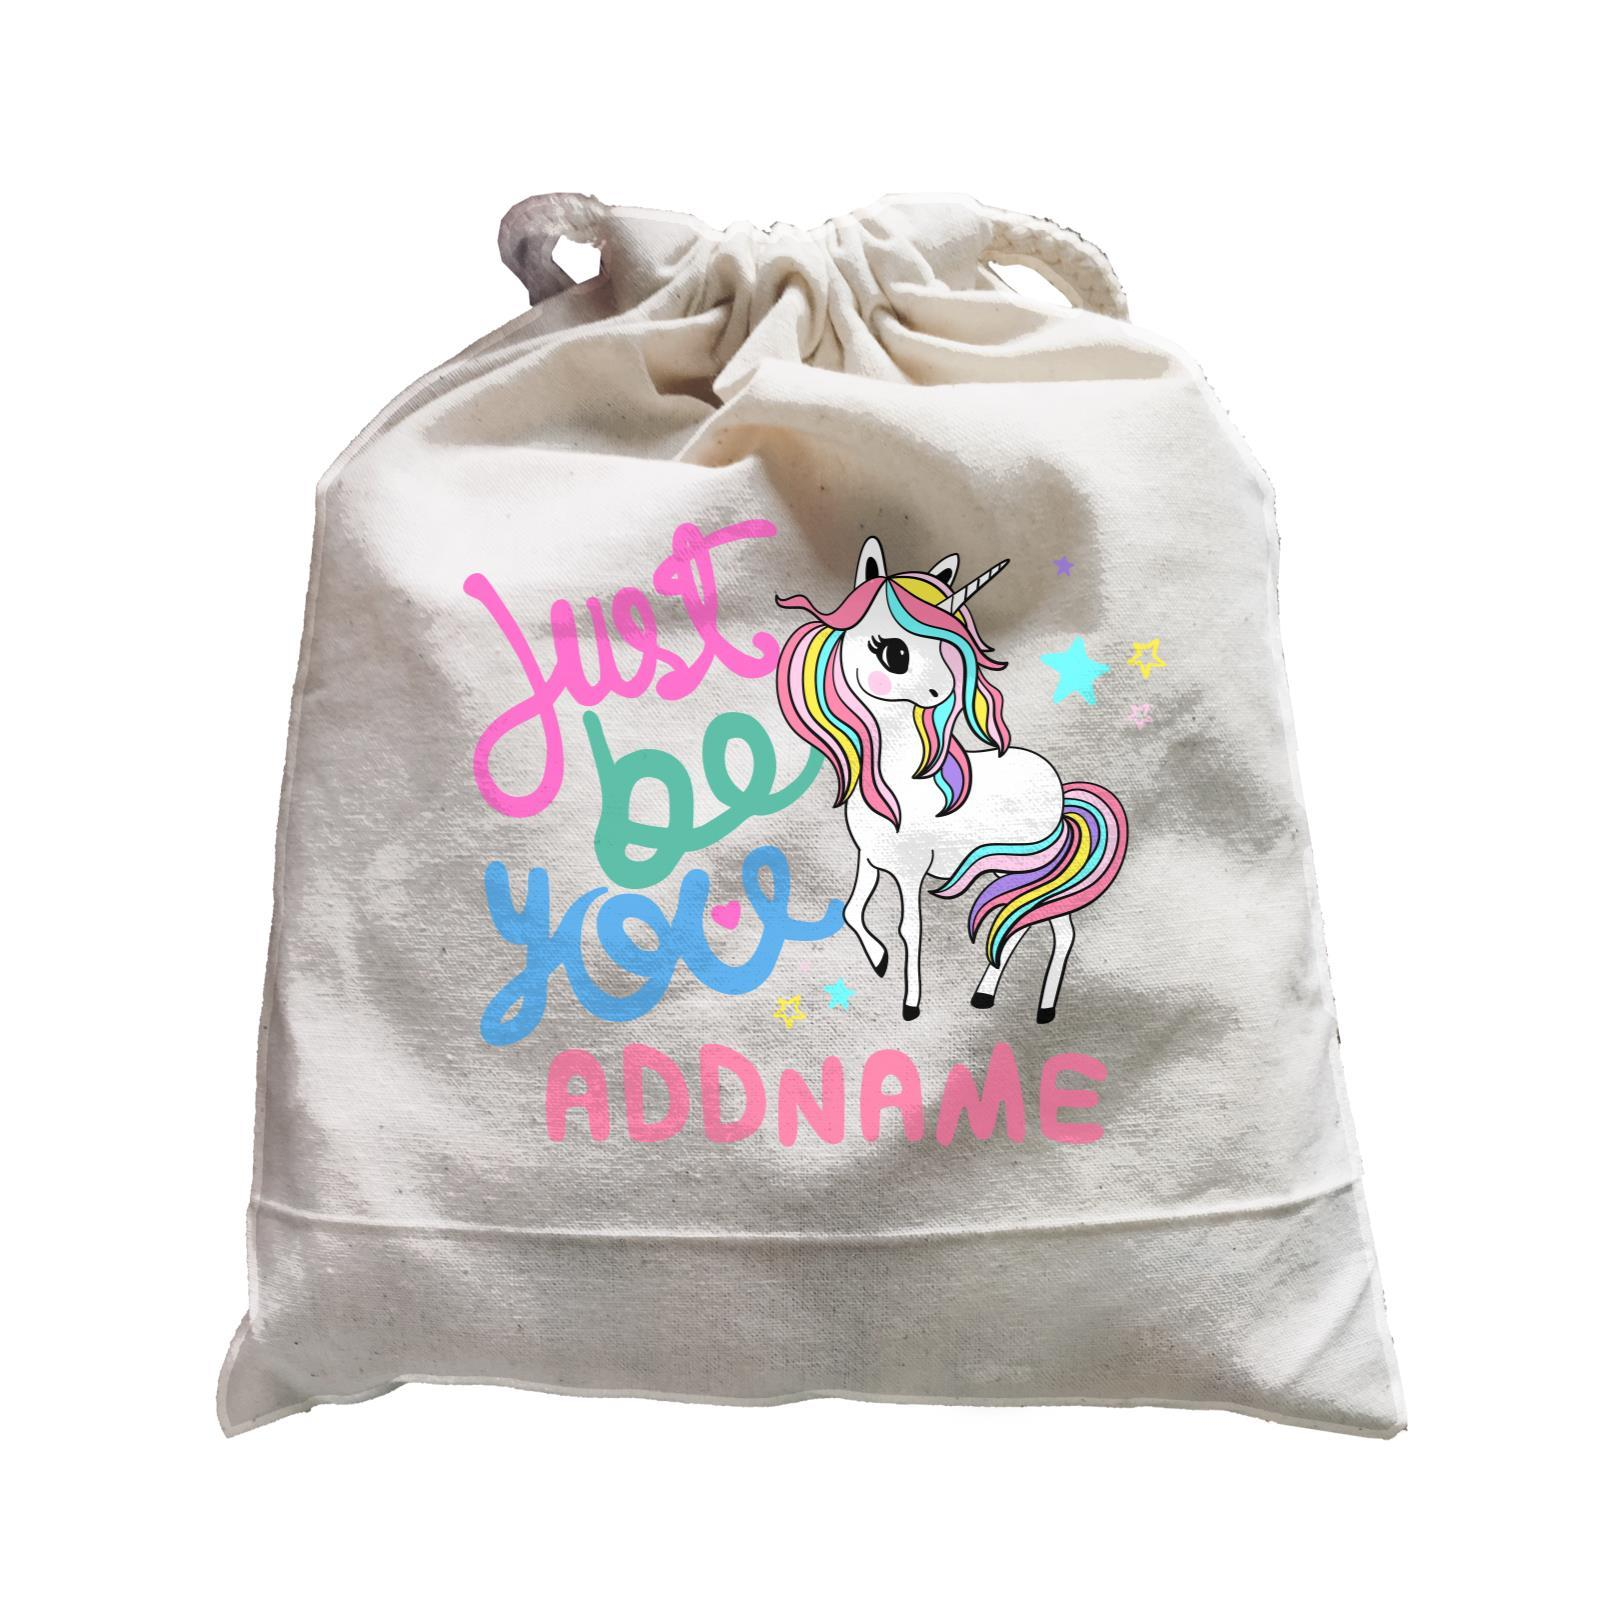 Children's Day Gift Series Just Be You Cute Unicorn Addname  Satchel